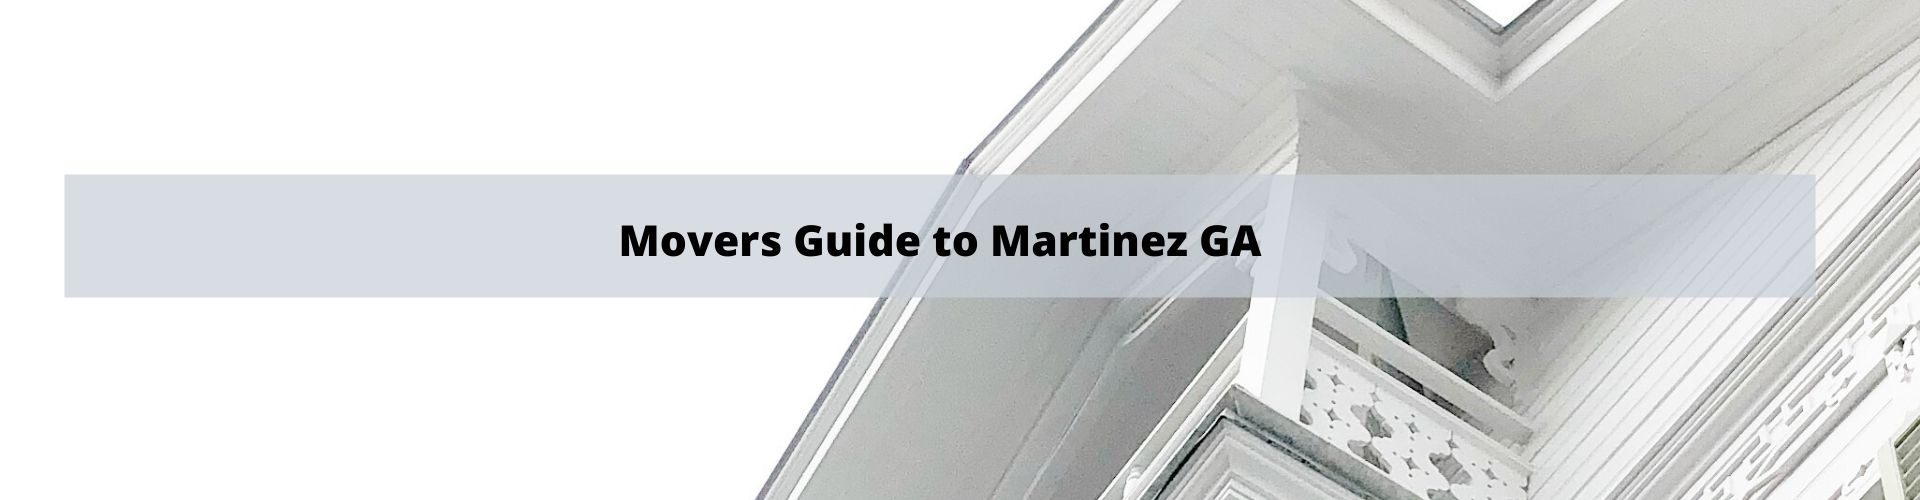 Movers Guide to Martinez GA Columbia County